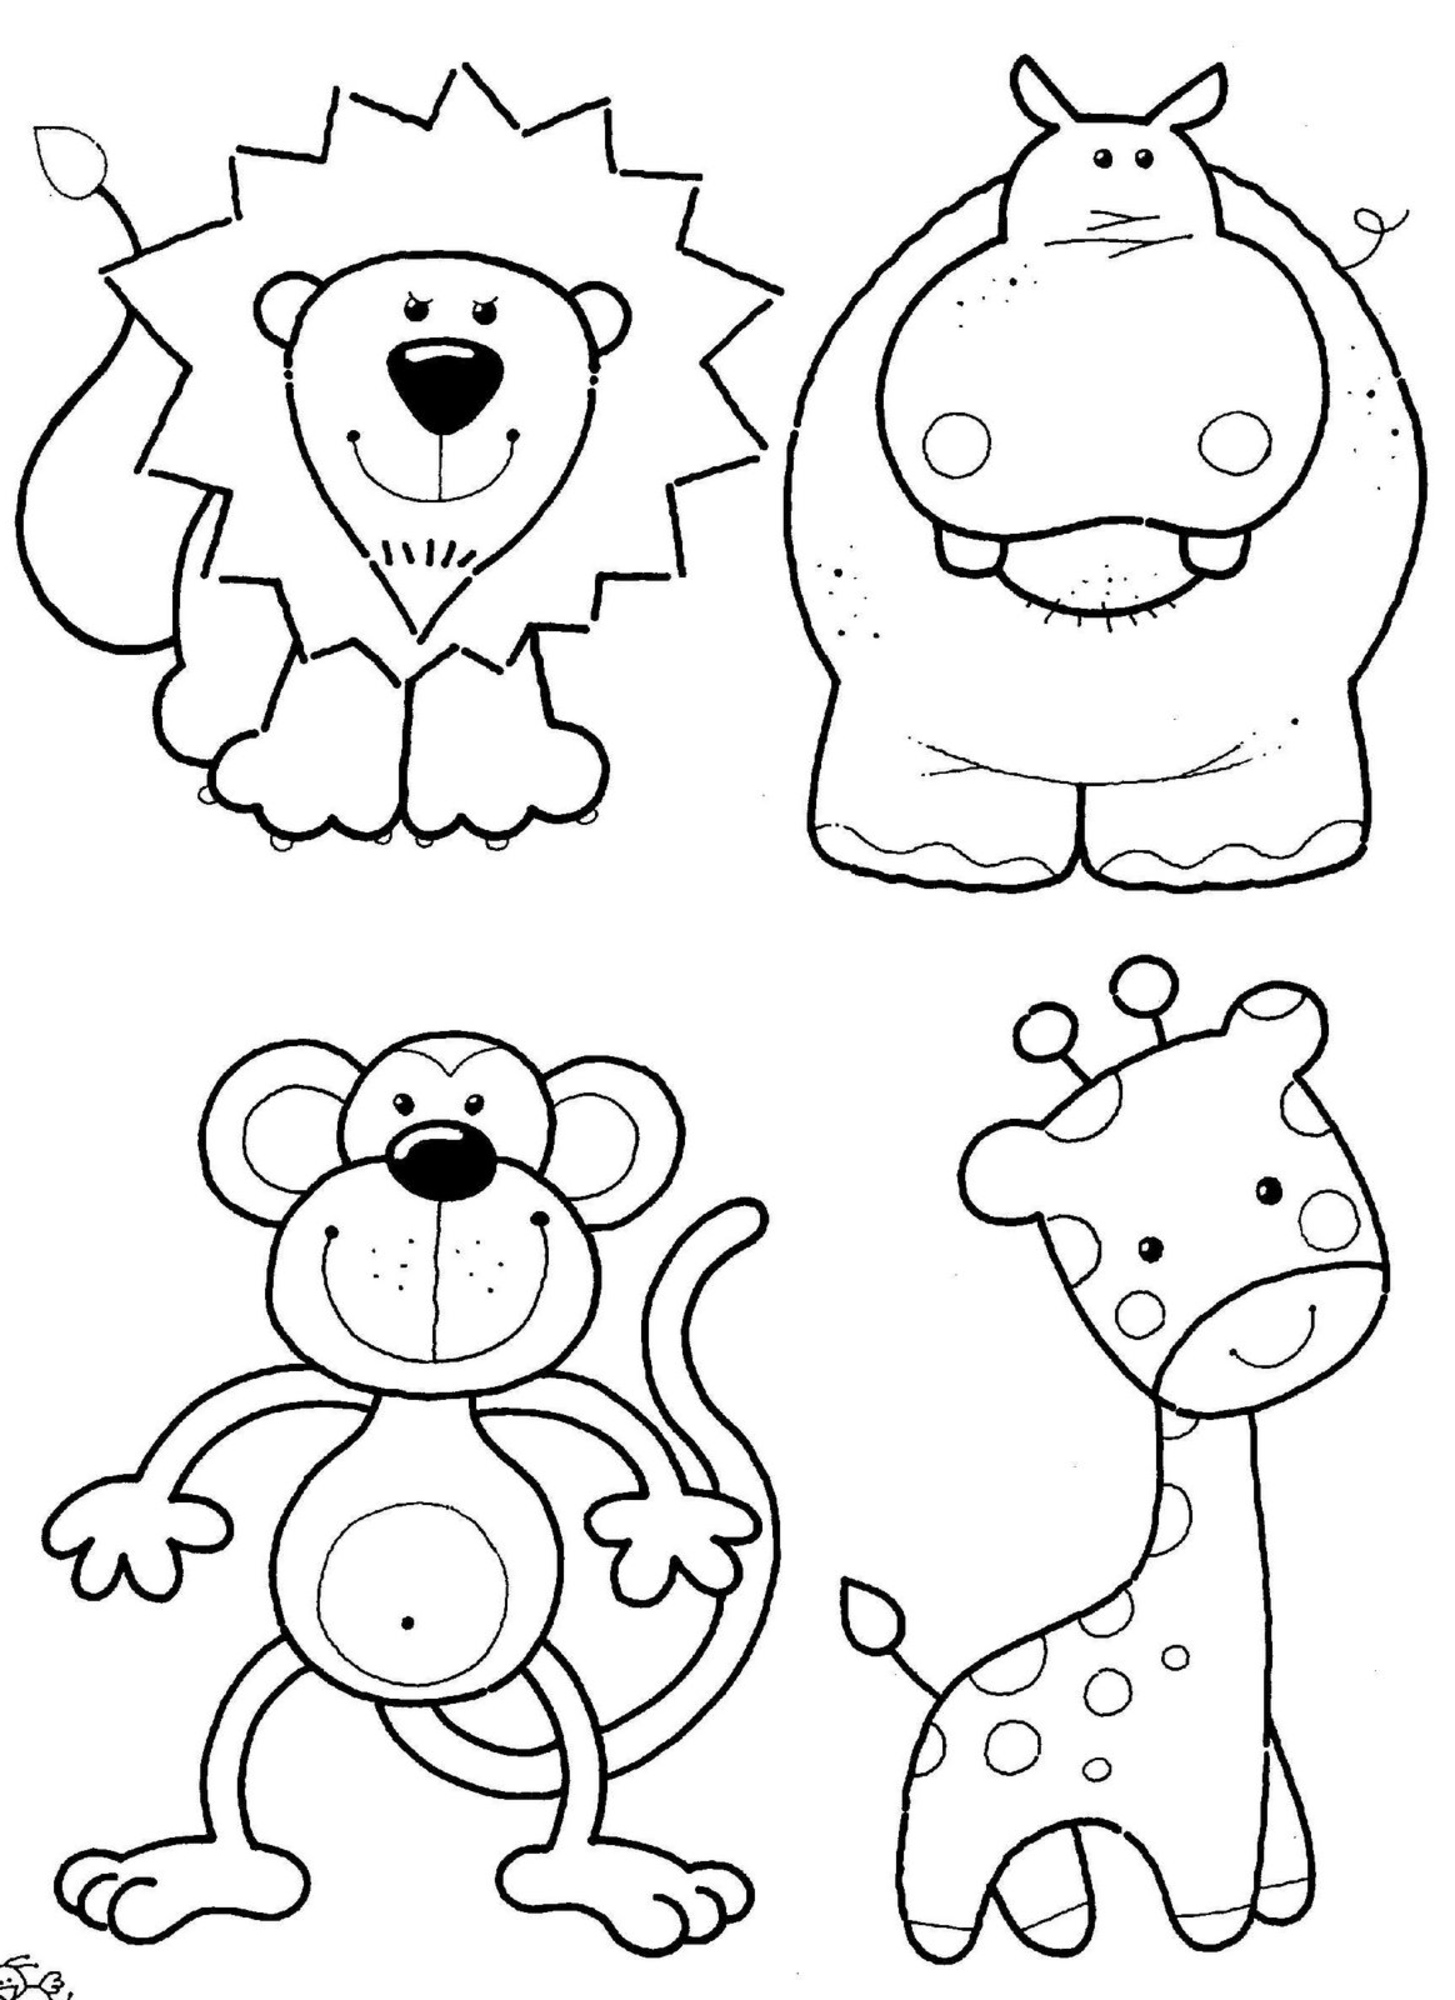 coloring printable jungle animals 111 best images about jungle safari vbs on pinterest animals printable jungle coloring